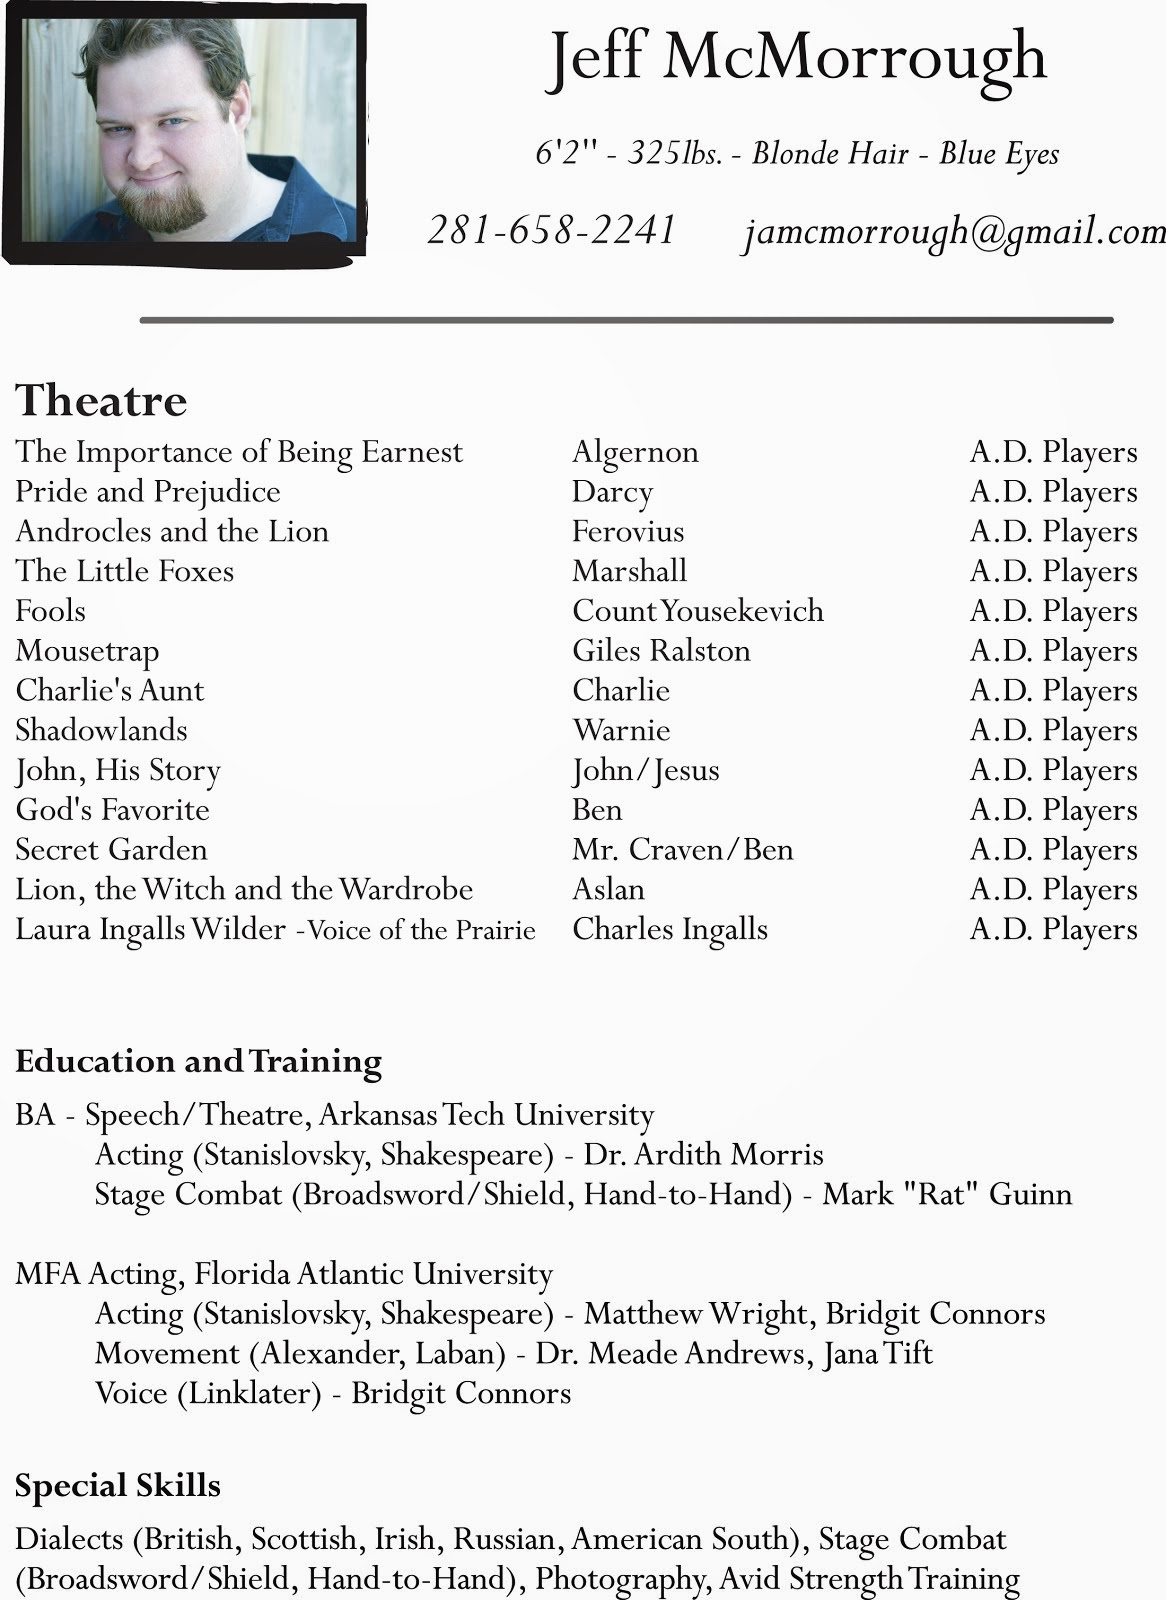 theatre resume sample theater resume template badak music domov actor resume example